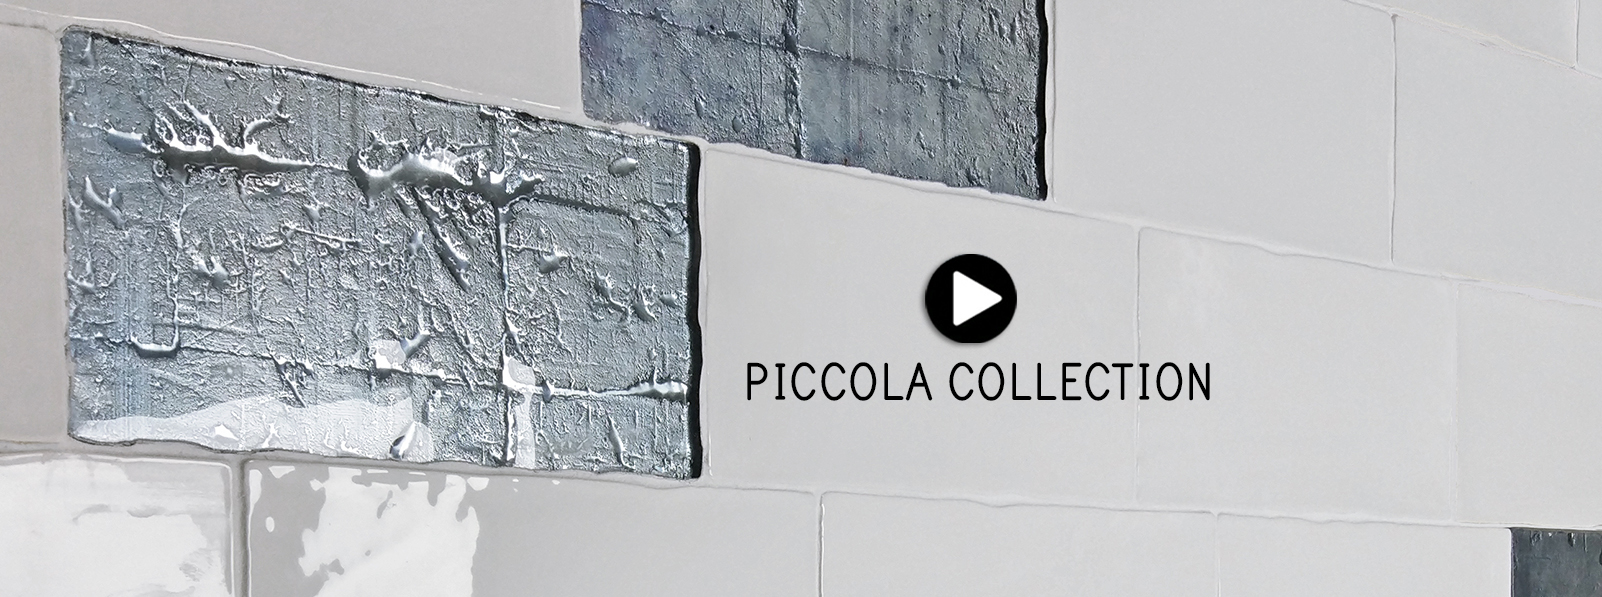 piccola collection